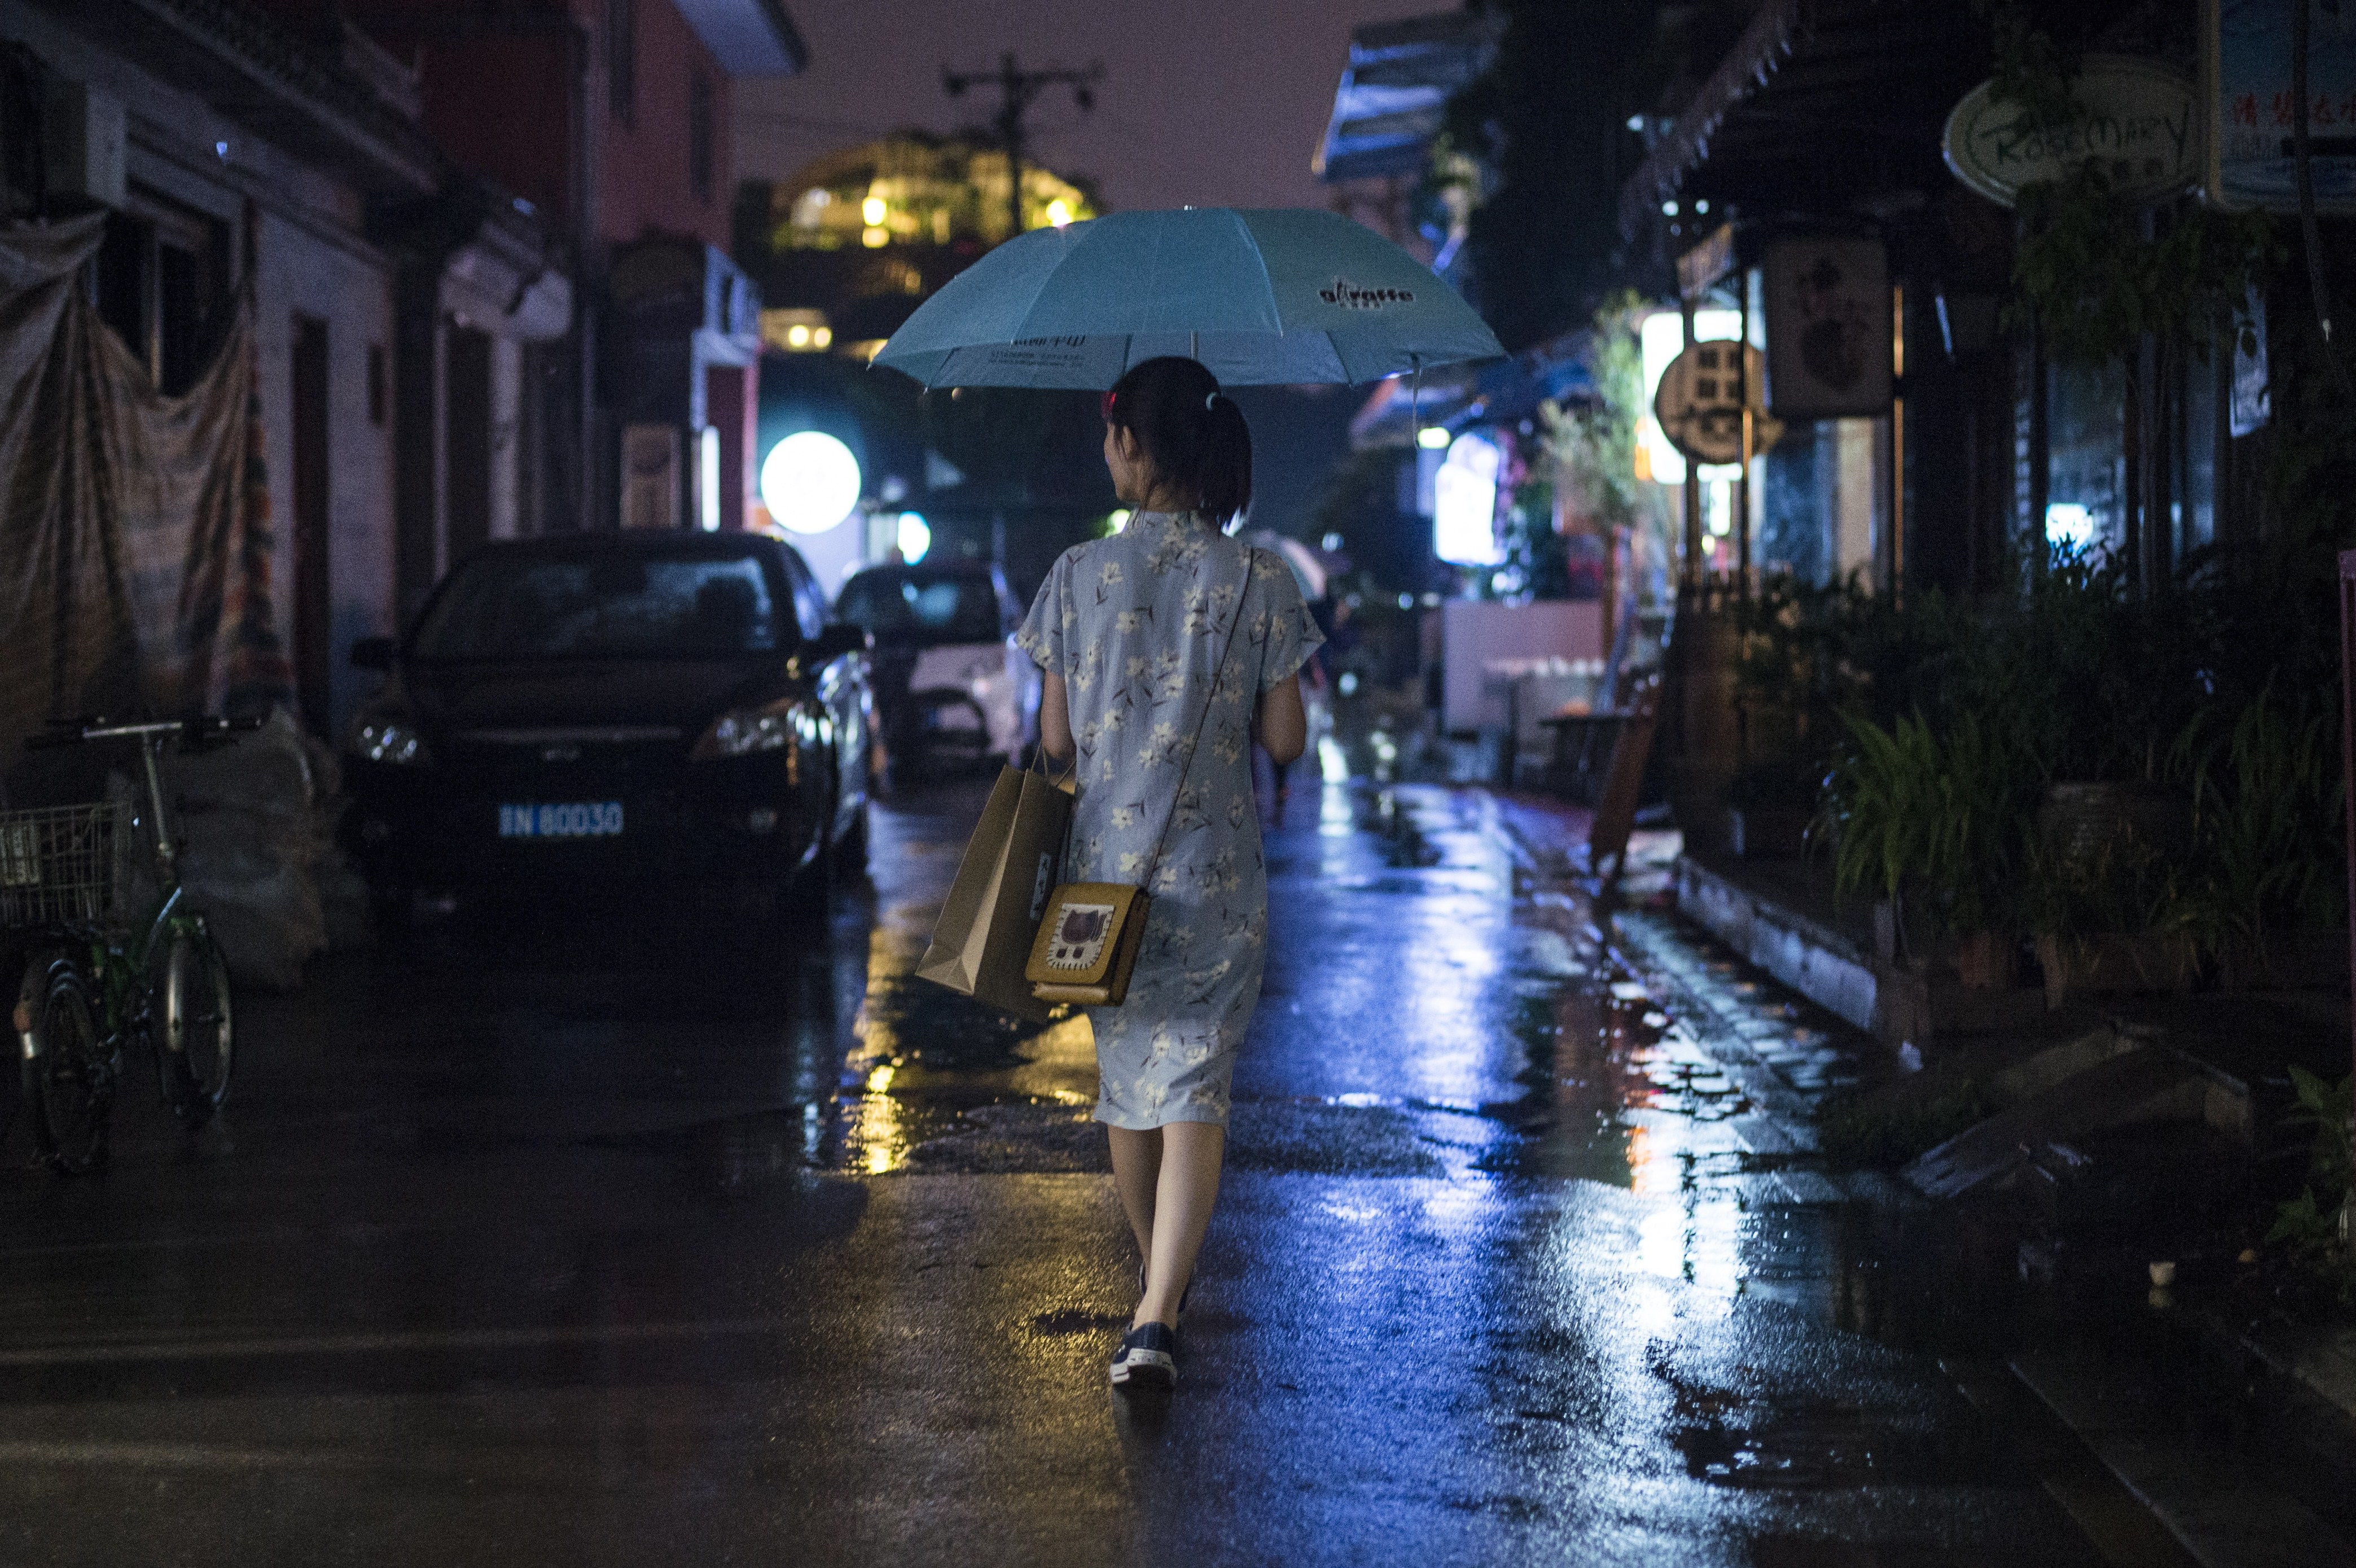 A woman walks under the rain with her umbrella in a hutong in Beijing on June 9, 2015.  AFP PHOTO / FRED DUFOUR